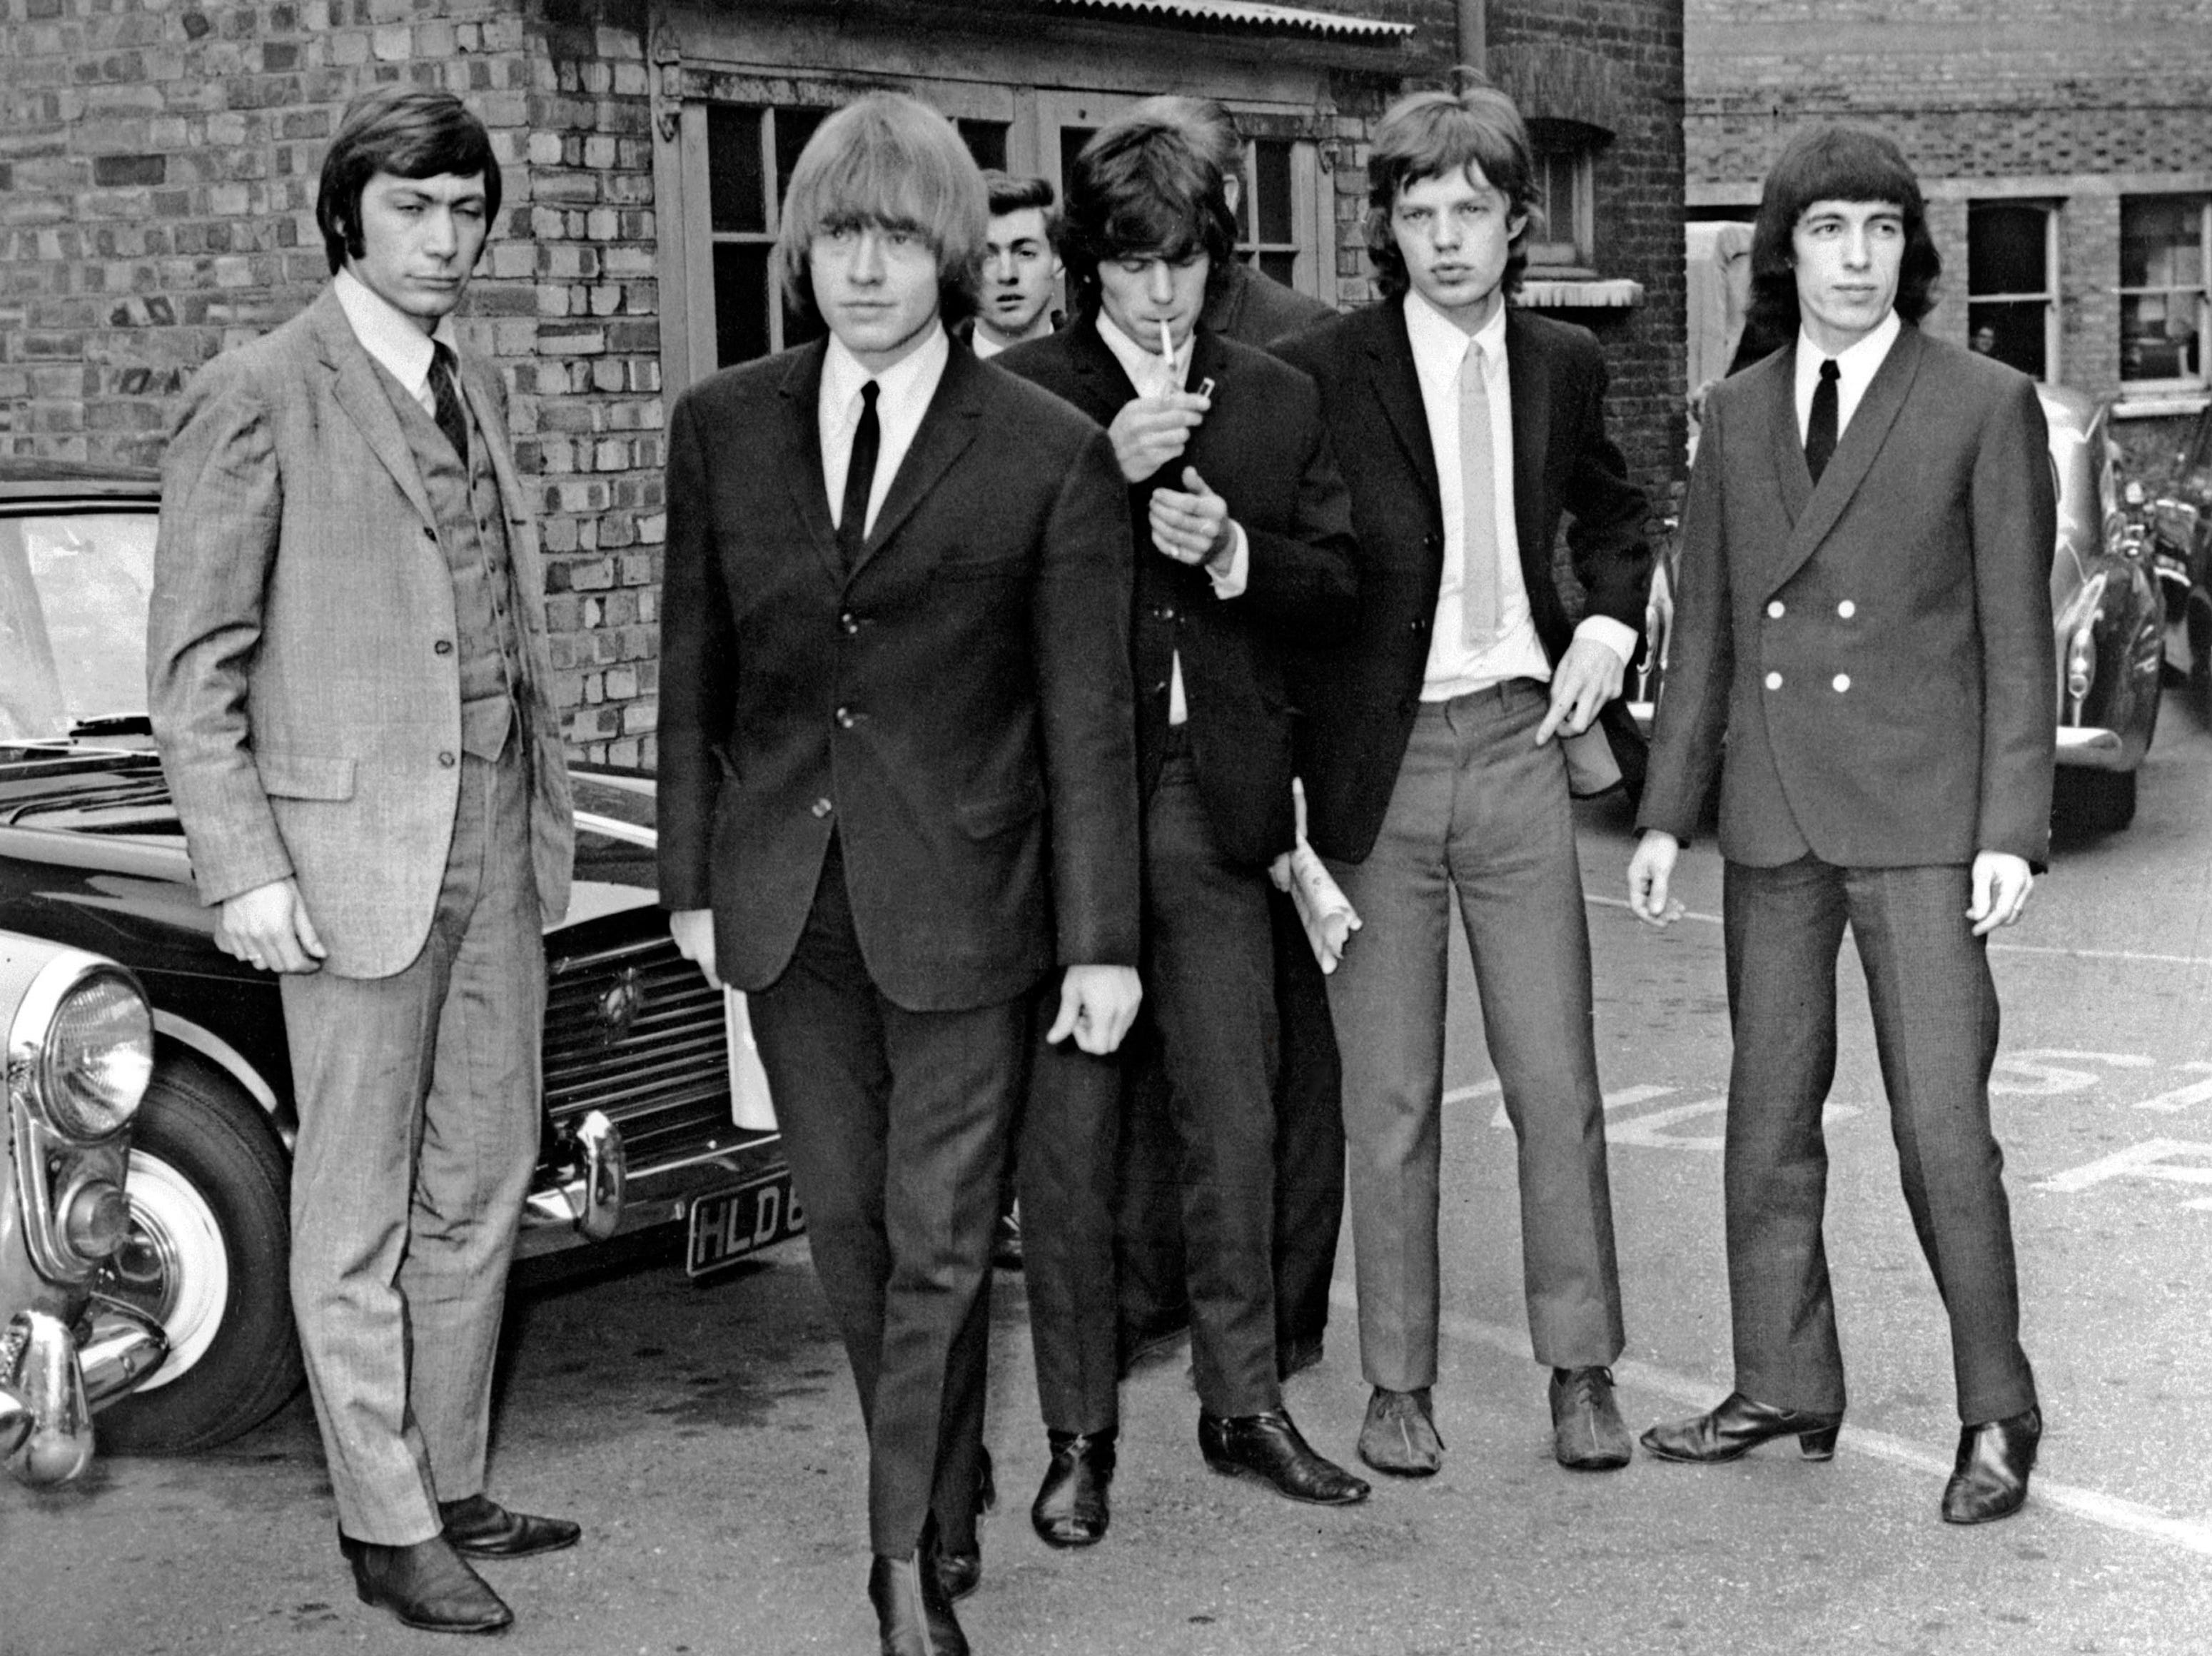 TO GO WITH AFP STORY BY JAMES PHEBY (FILES) A file picture taken in London, on July 22, 1965, shows members of the Rolling Stones band (L-R) Charlie Watts, Brian Jones, Keith Richards, Mick Jagger and Bill Wyman. Most London shoppers rush by 165 Oxford Street without a second glance -- but it was here 50 years ago that The Rolling Stones played their first gig and changed the landscape of pop music forever. Mick Jagger, Keith Richards and Brian Jones played The Marquee Club on July 12, 1962 with three others, the first time they performed under the band name which would become synomymous worldwide with excess and muscial flair.  AFP PHOTO /FILES-/AFP/GettyImages ORIG FILE ID: 512206079